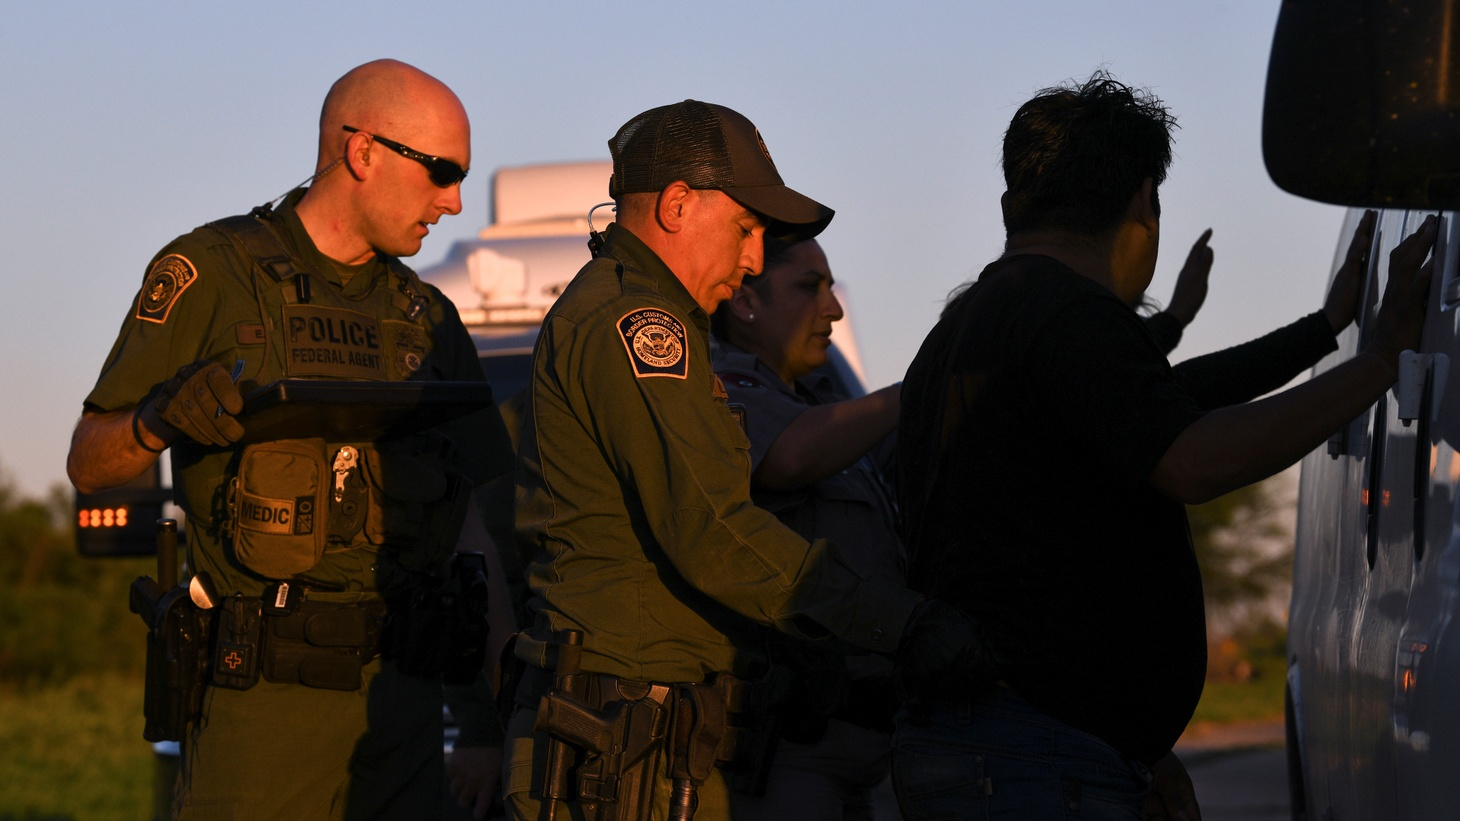 U.S. Border Patrol agents apprehend undocumented migrants after they illegally crossed the U.S.-Mexico border in Mission, Texas, U.S., April 9, 2019.